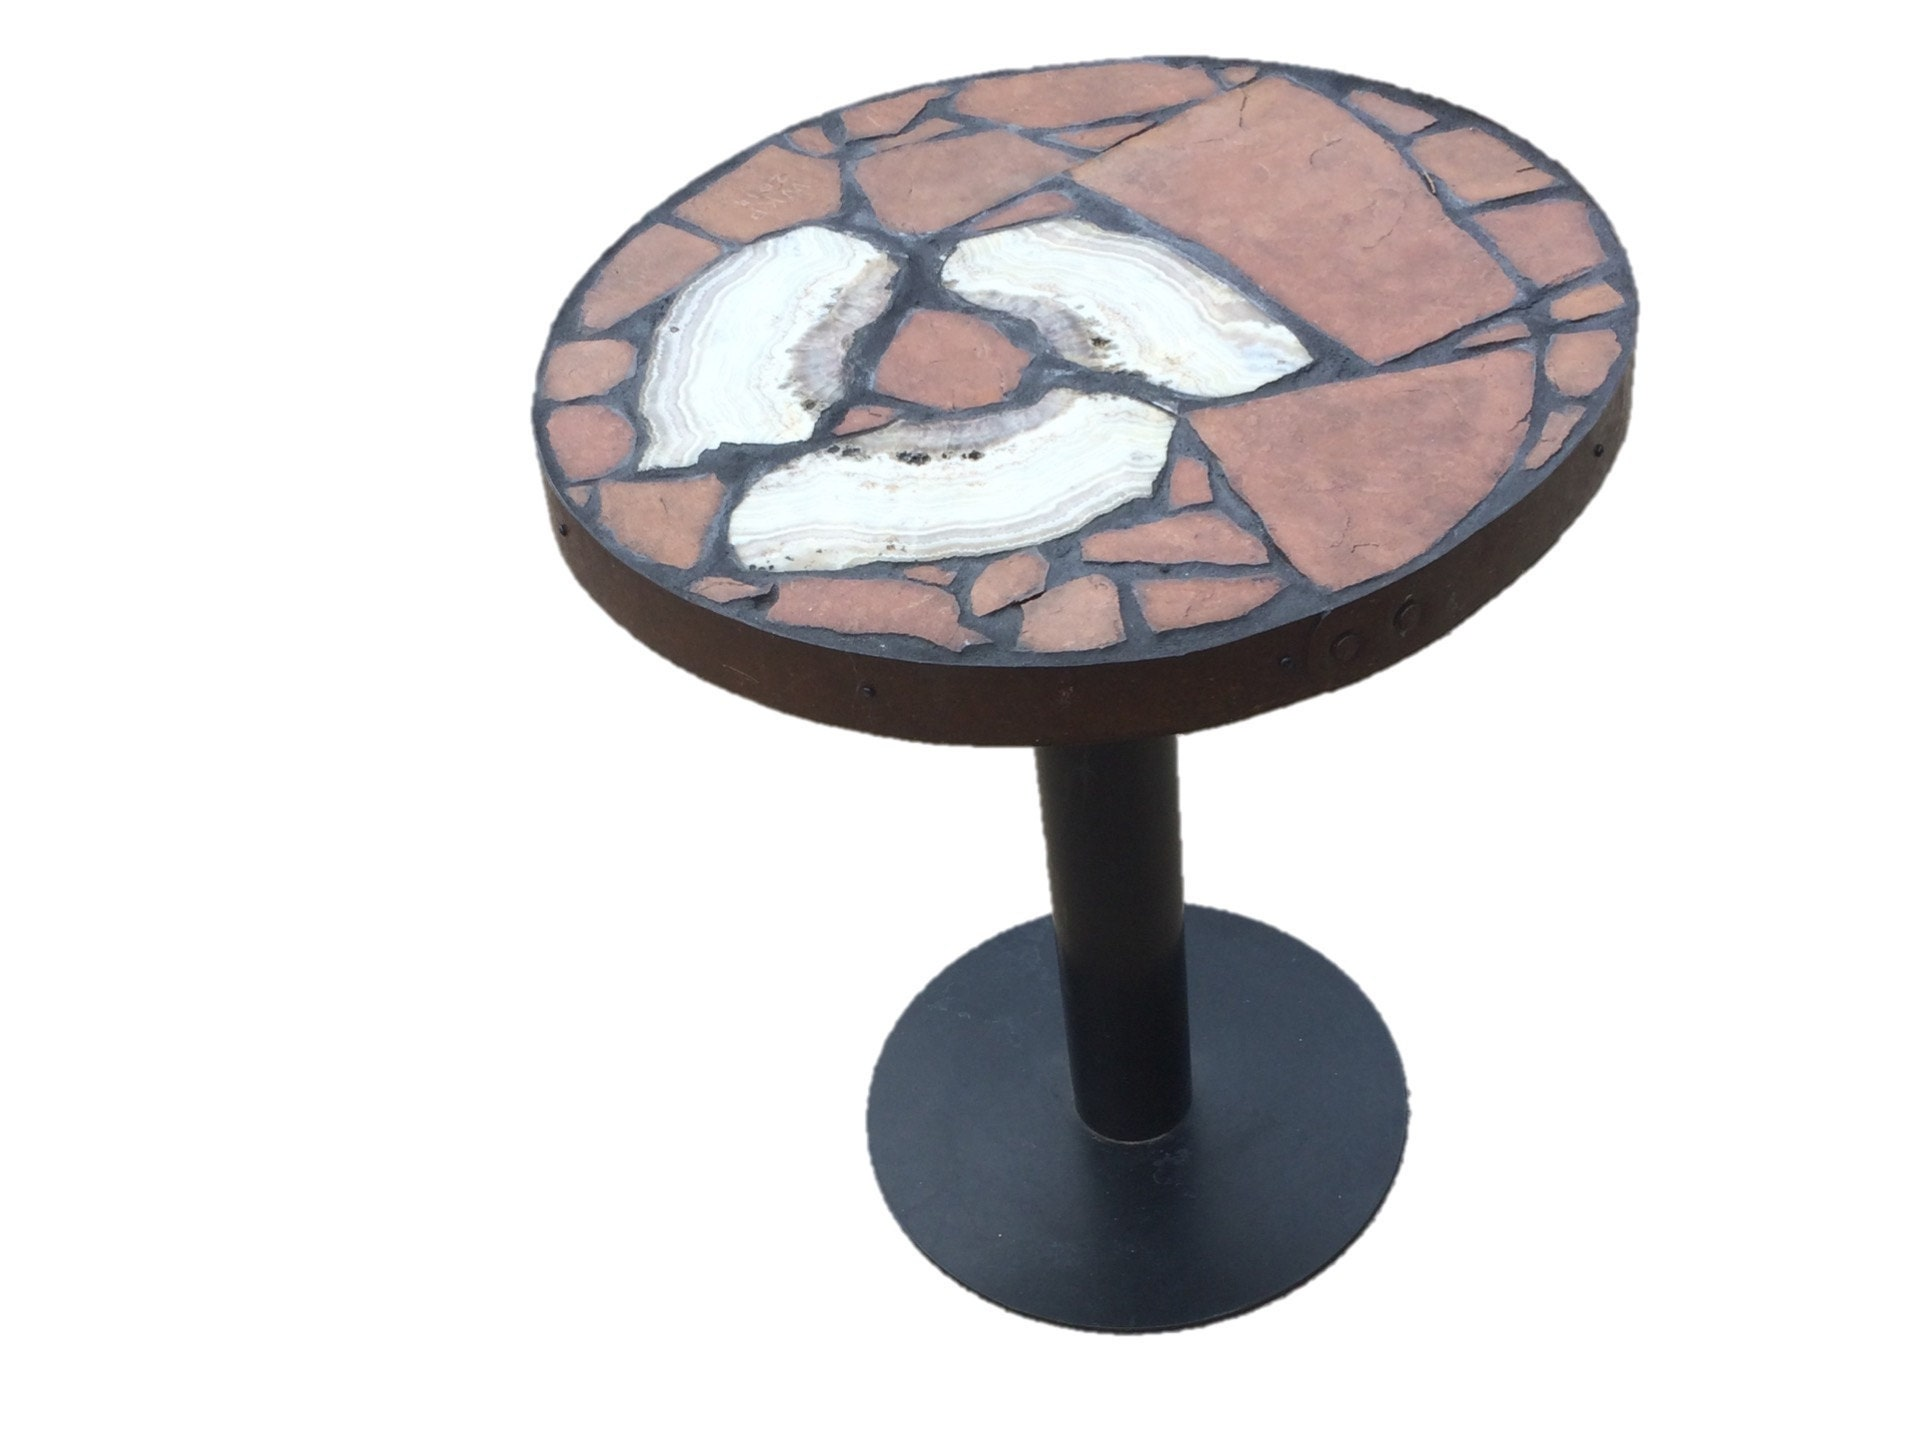 Creed Whirlpool: A small dining table featuring sowbelly agate